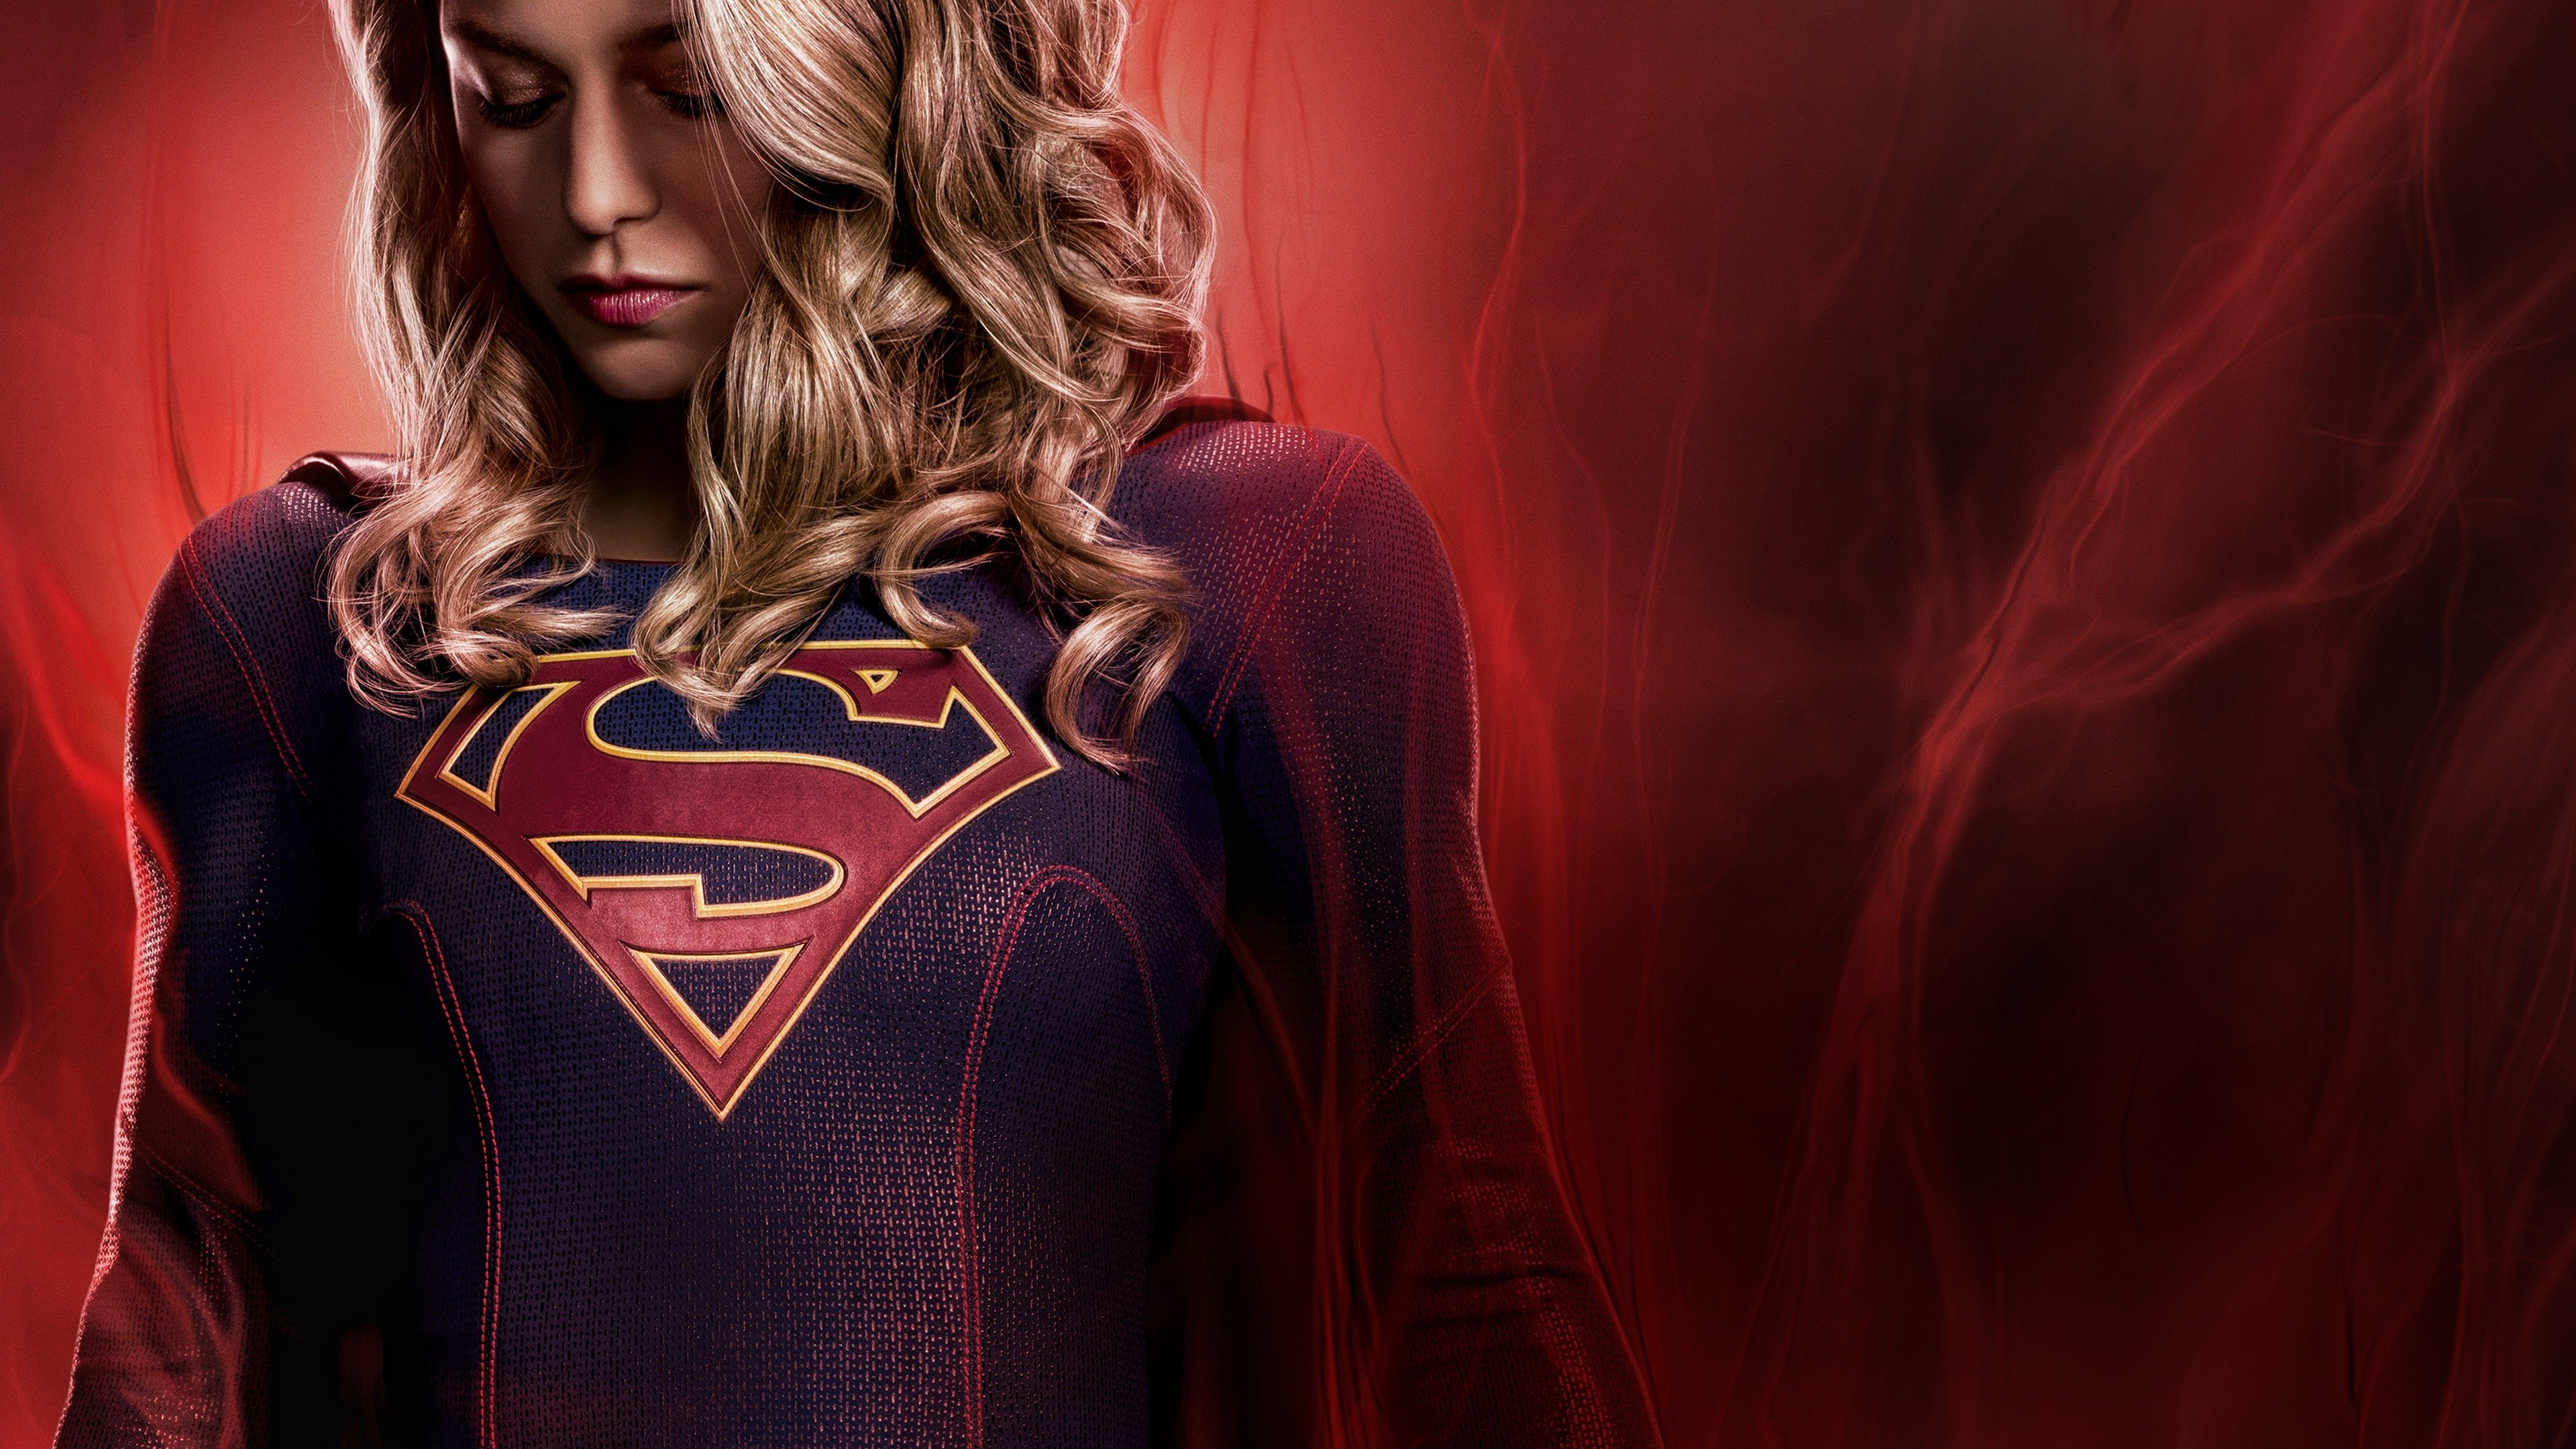 Supergirl season 4 4k hd tv shows 4k wallpapers images - Tv series wallpaper 4k ...